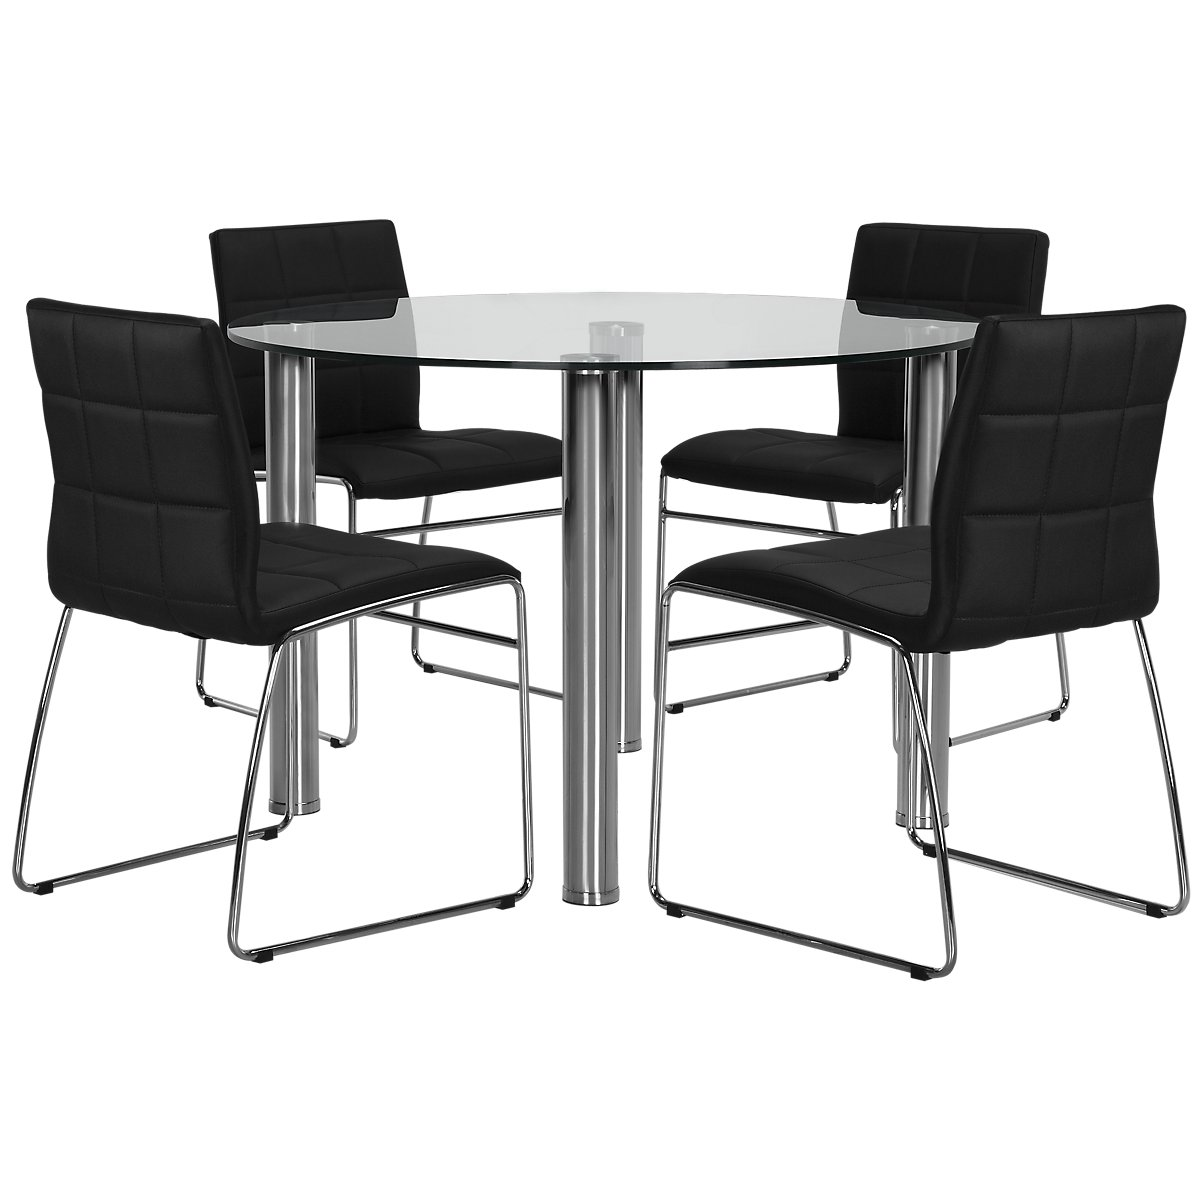 Tables N Chairs: Napoli Black Round Table & 4 Chairs